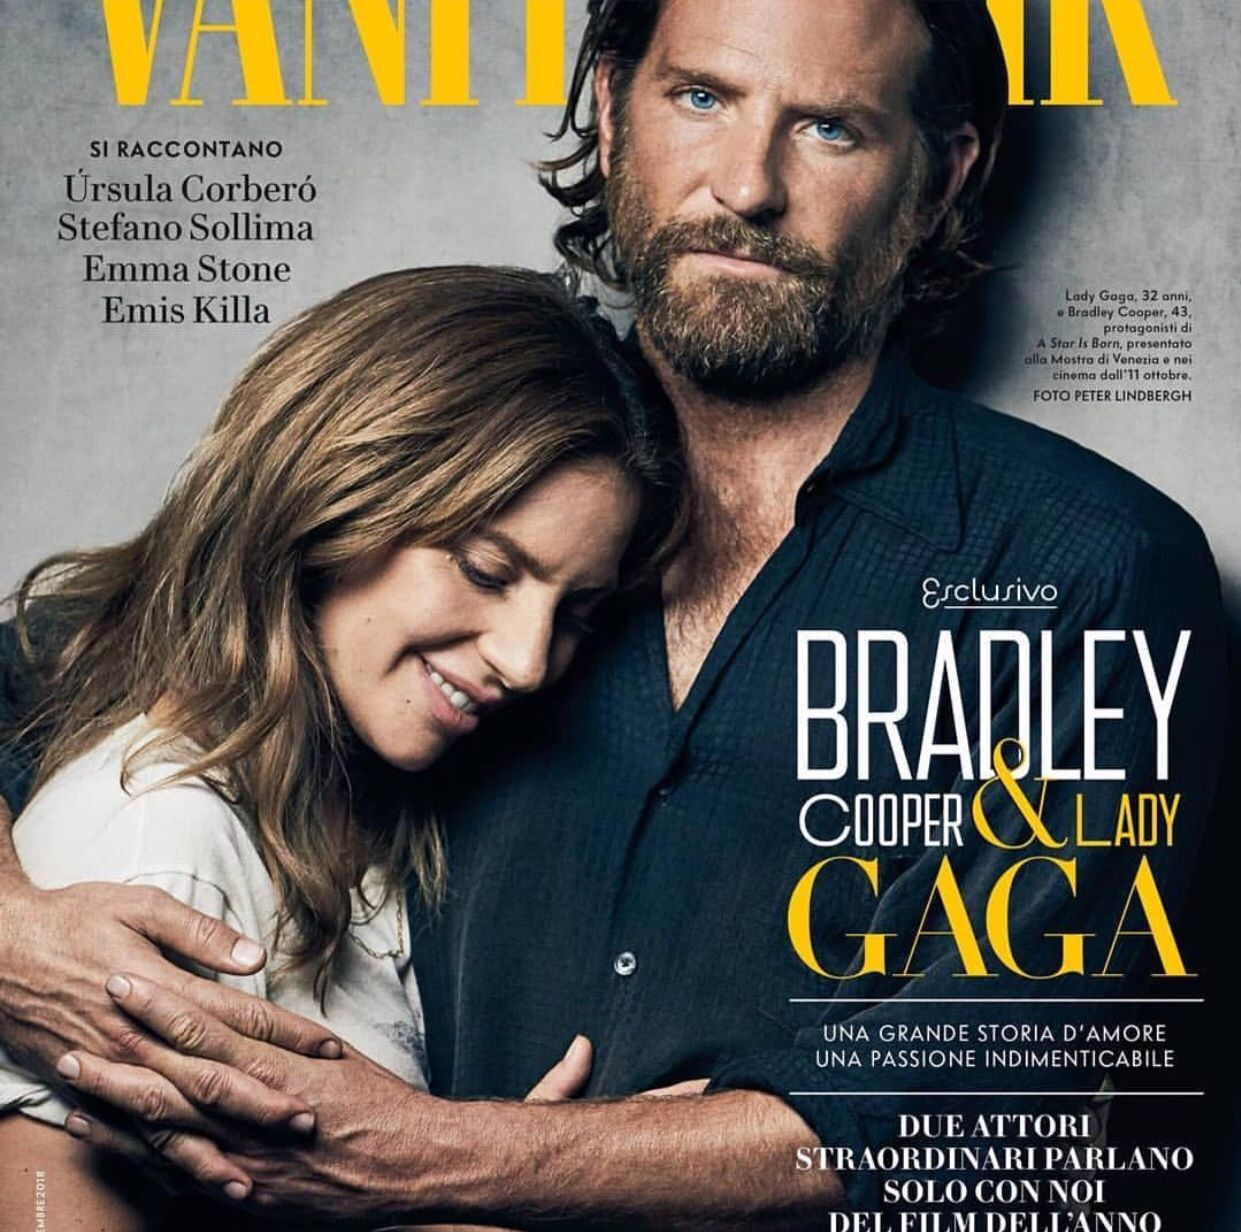 A Star Is Born A Star Is Born Bradley Cooper Celebrity Couples